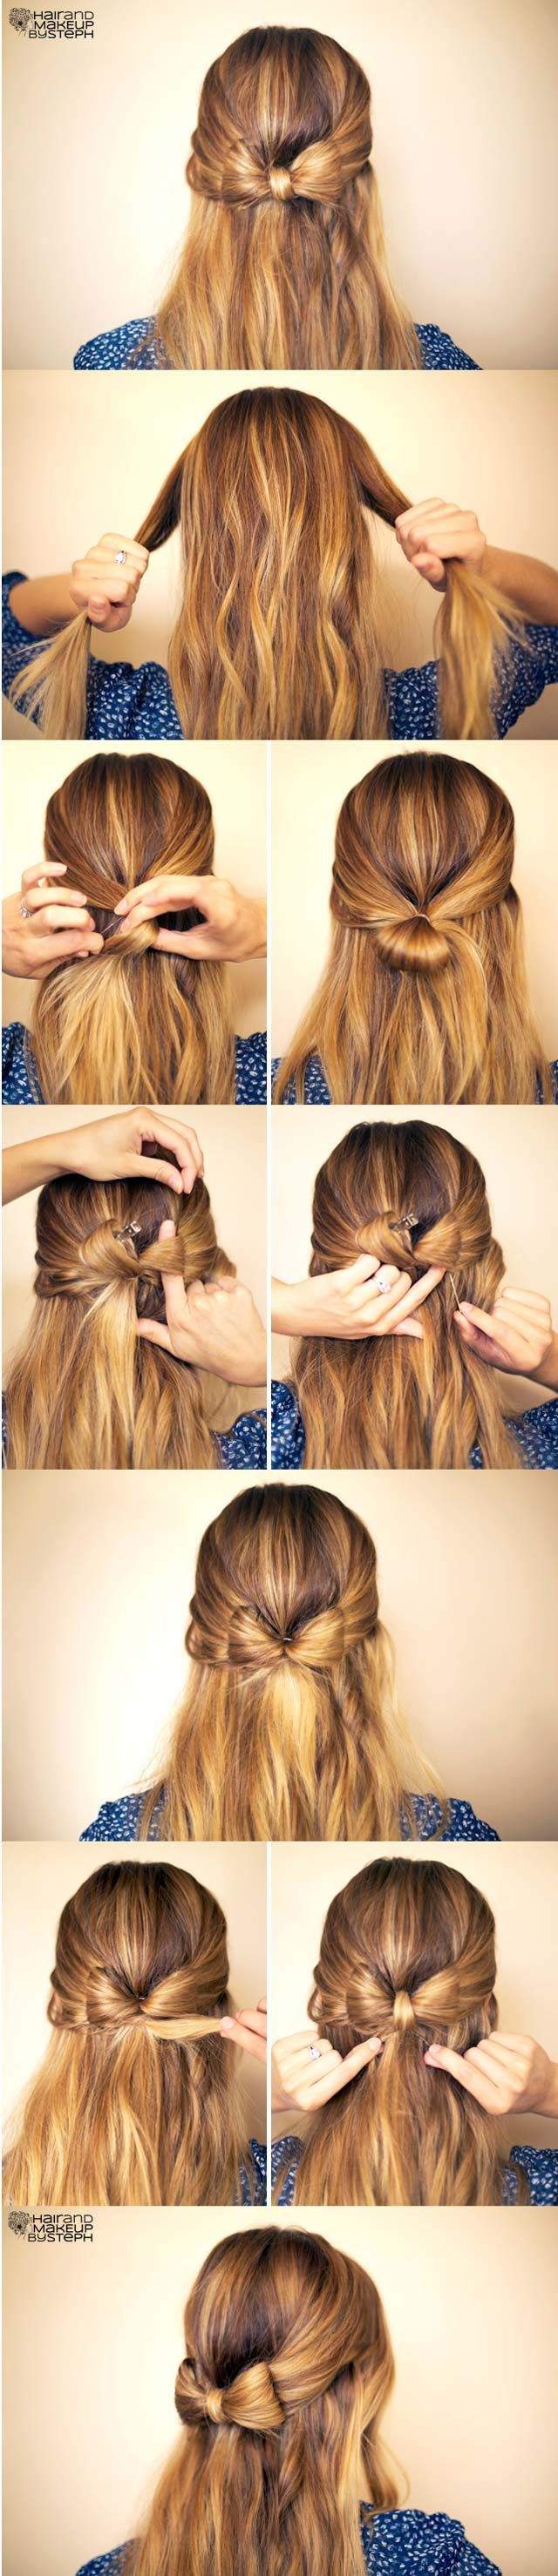 Easy Bow Hairstyle Tutorial